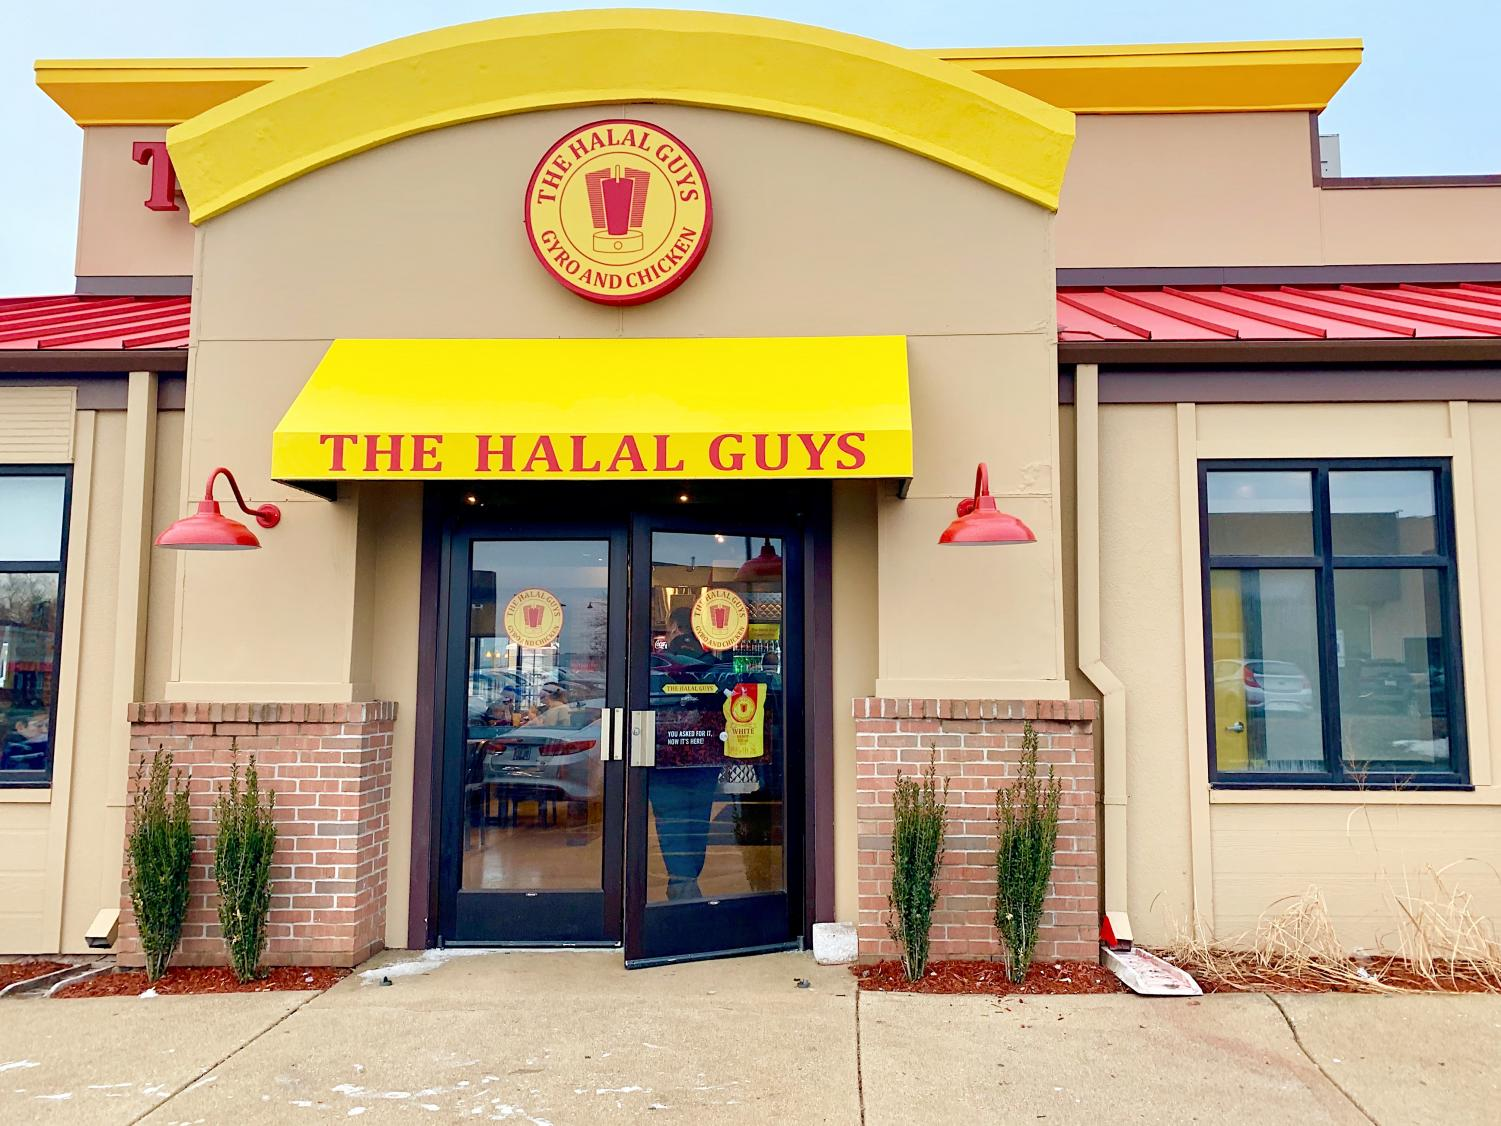 On Monday, Feb. 4, The Halal Guys opened up a new location that's just a 10 minute drive from the school.